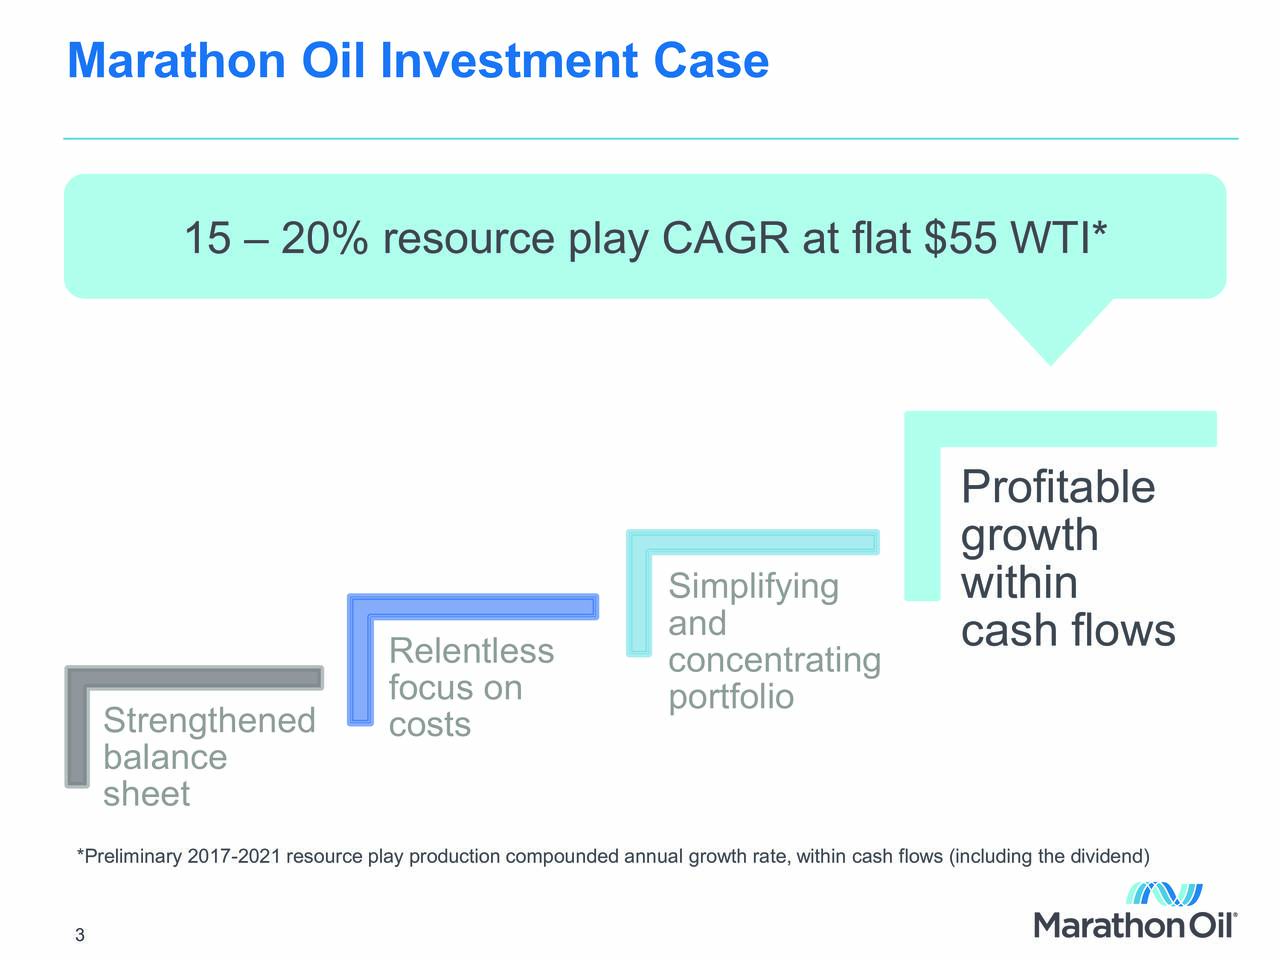 15  20% resource play CAGR at flat $55 WTI* Profitable growth Simplifying within Relentless concentrating cash flows focus on portfolio Strengthened costs balance sheet *Preliminary 2017-2021 resource play production compounded annual growth rate, within cash flows (including the dividend)